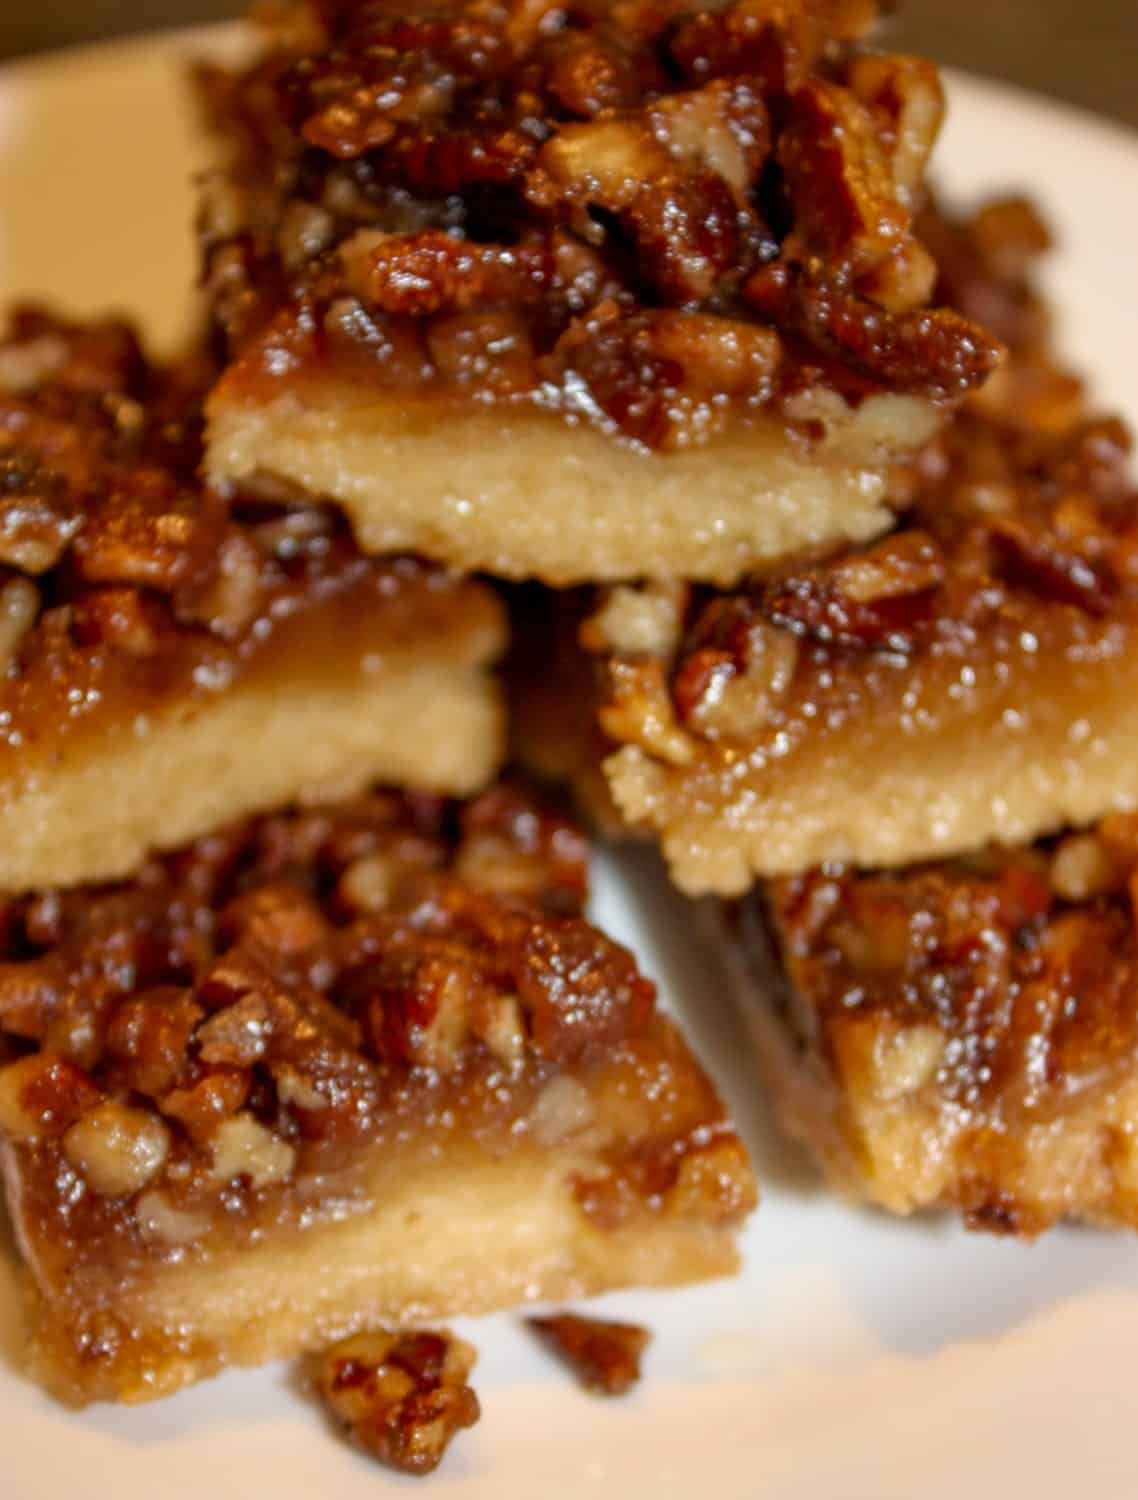 Pecan Pie Squares are a chewy, flavourful dessert square that will be a perfect addition to your holiday dessert tray. This gluten free version will surprise your guests that are able to consume a regular diet.